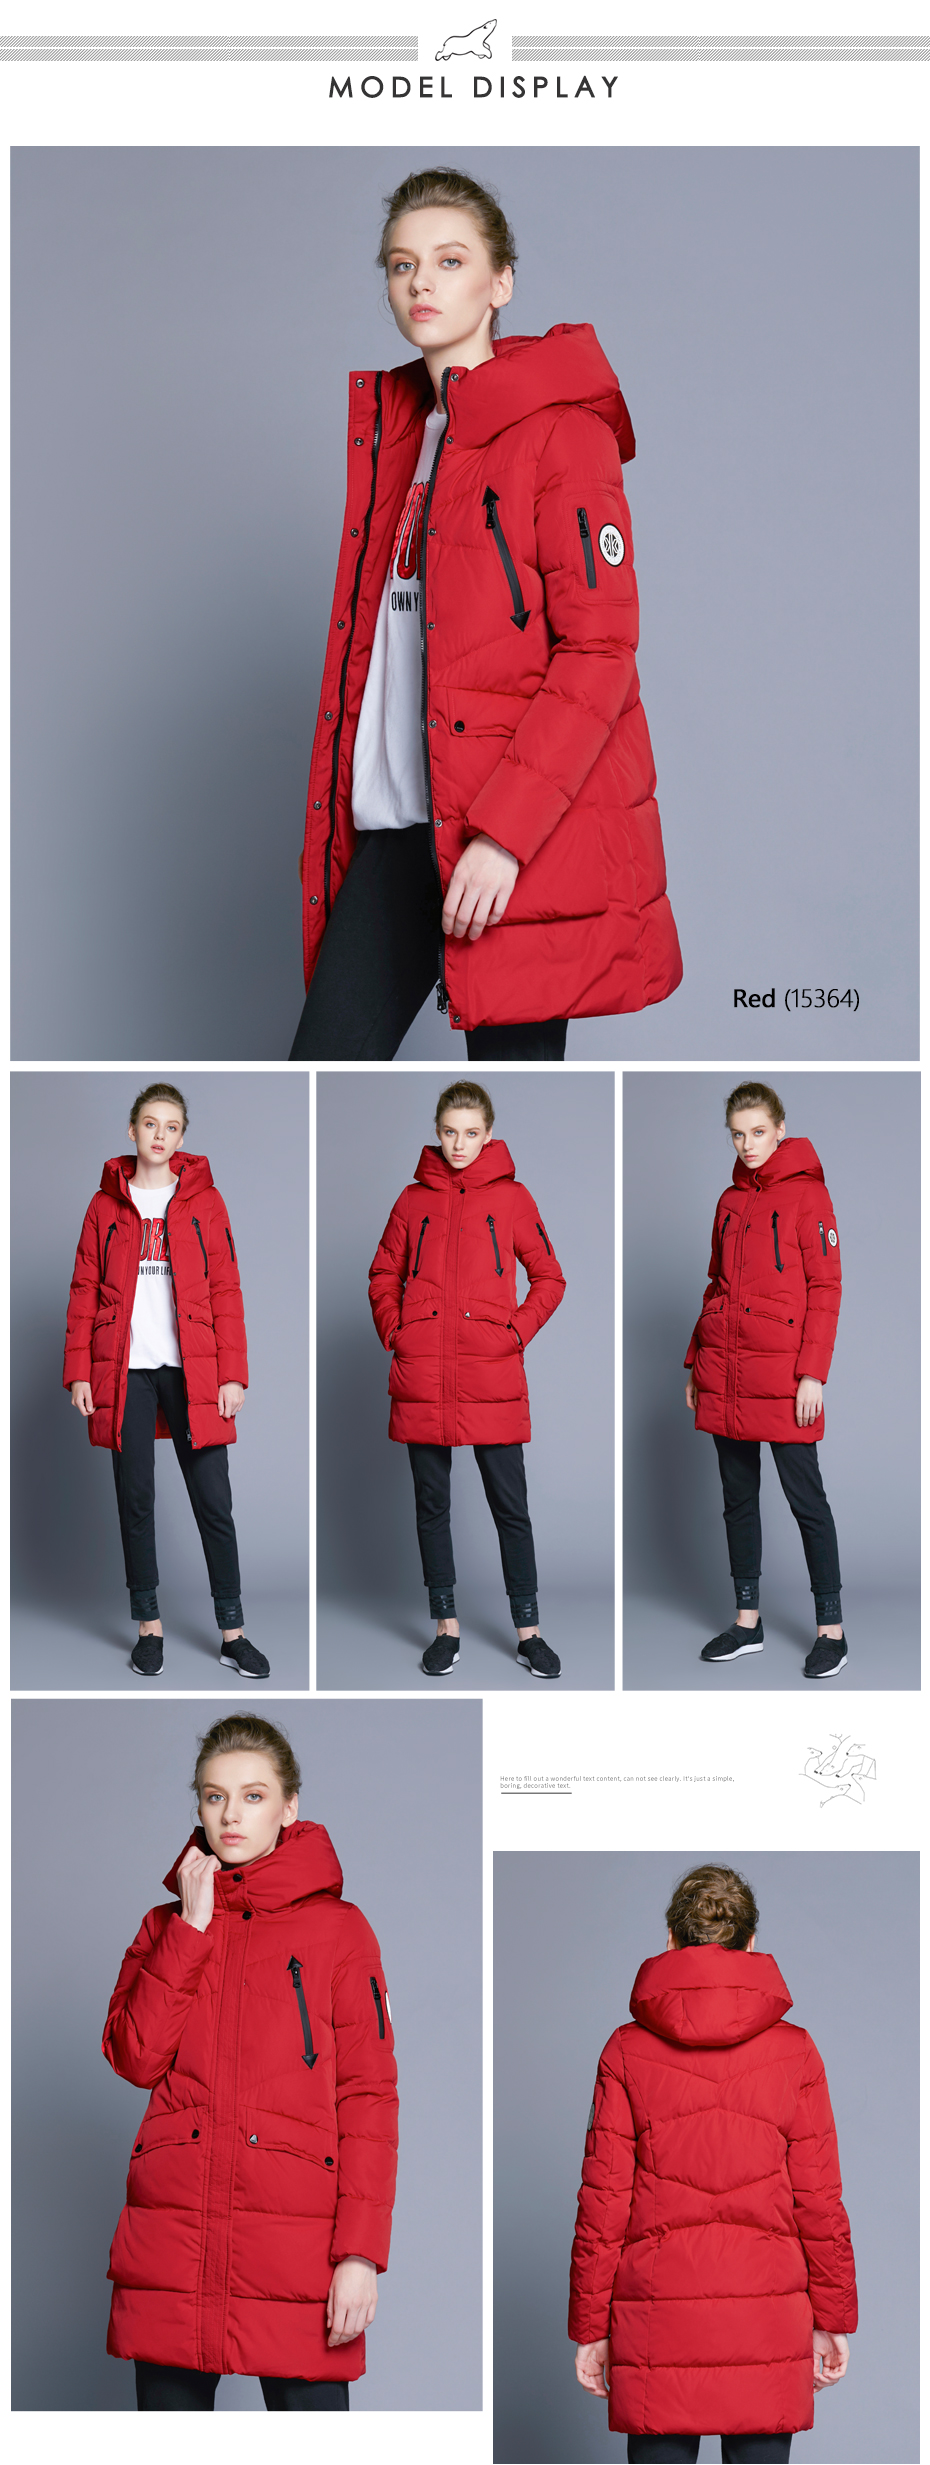 ICEbear 19 New Women Winter Jacket Coat Slim Winter Quilted Coat Long Style Hood Slim Parkas Thicken Outerwear B16G6155D 7